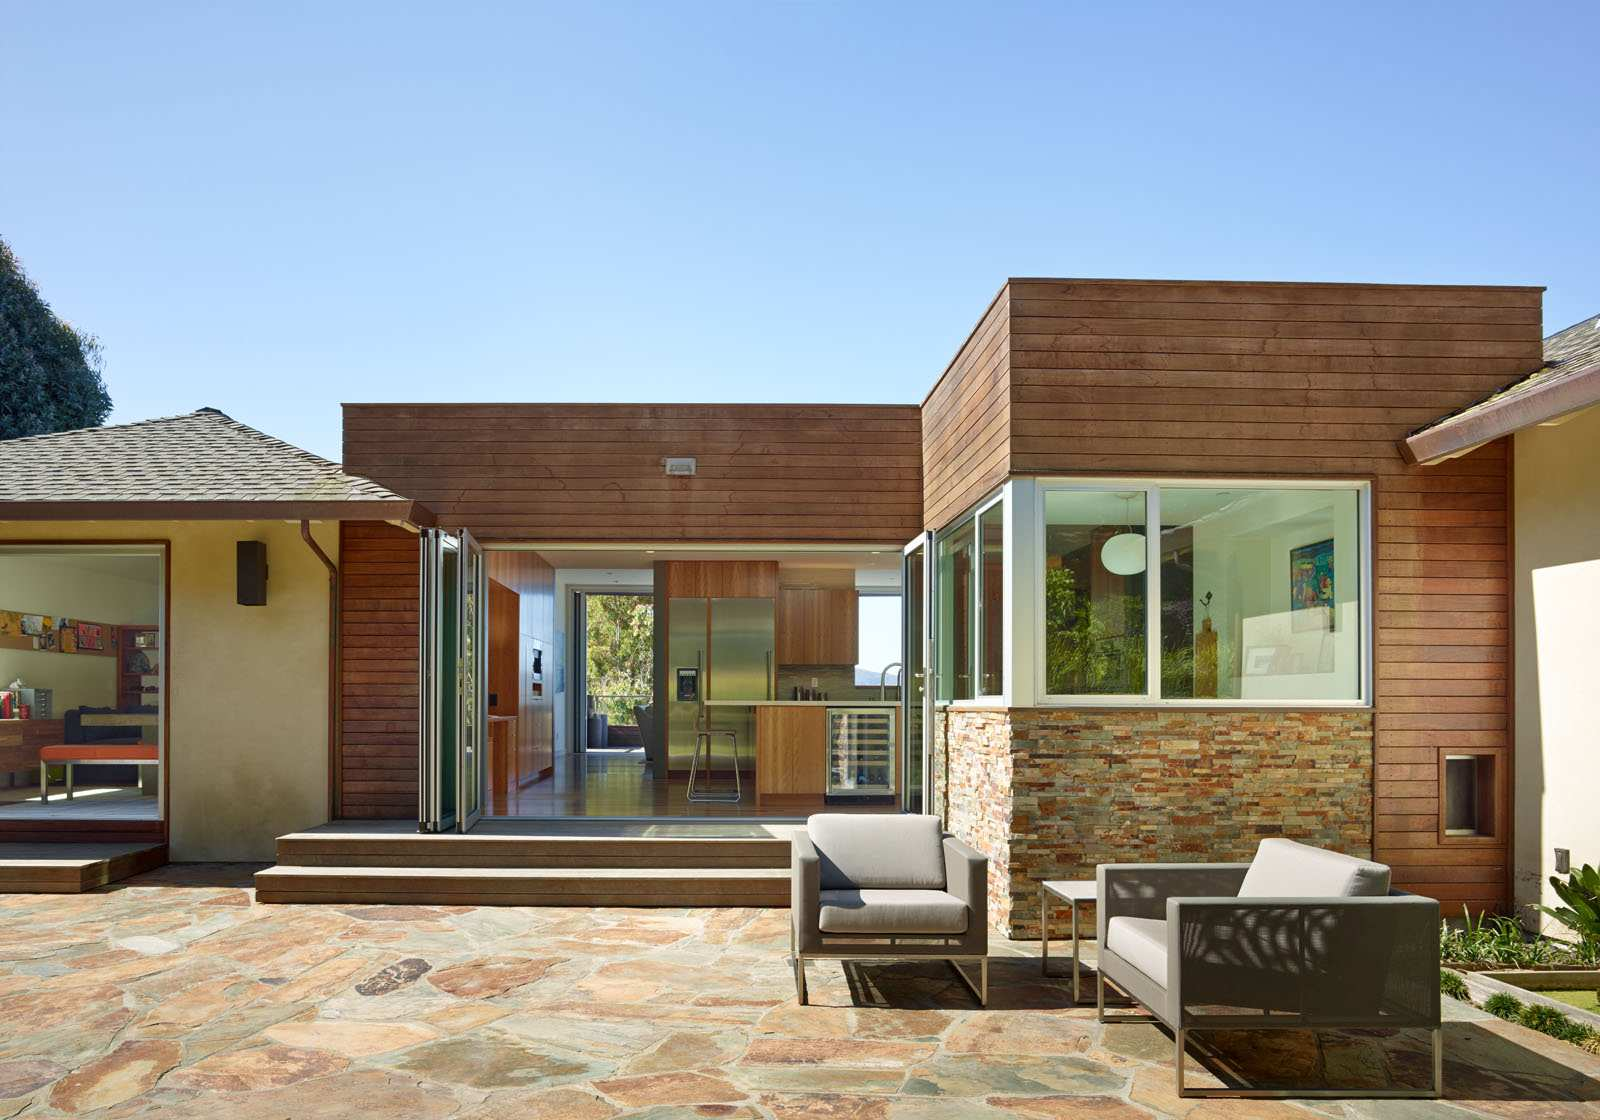 Mid-Century-Modern-exterior-with-NanaWall-glass-wall-system-connecting-kitchen-to-outdoor-patio